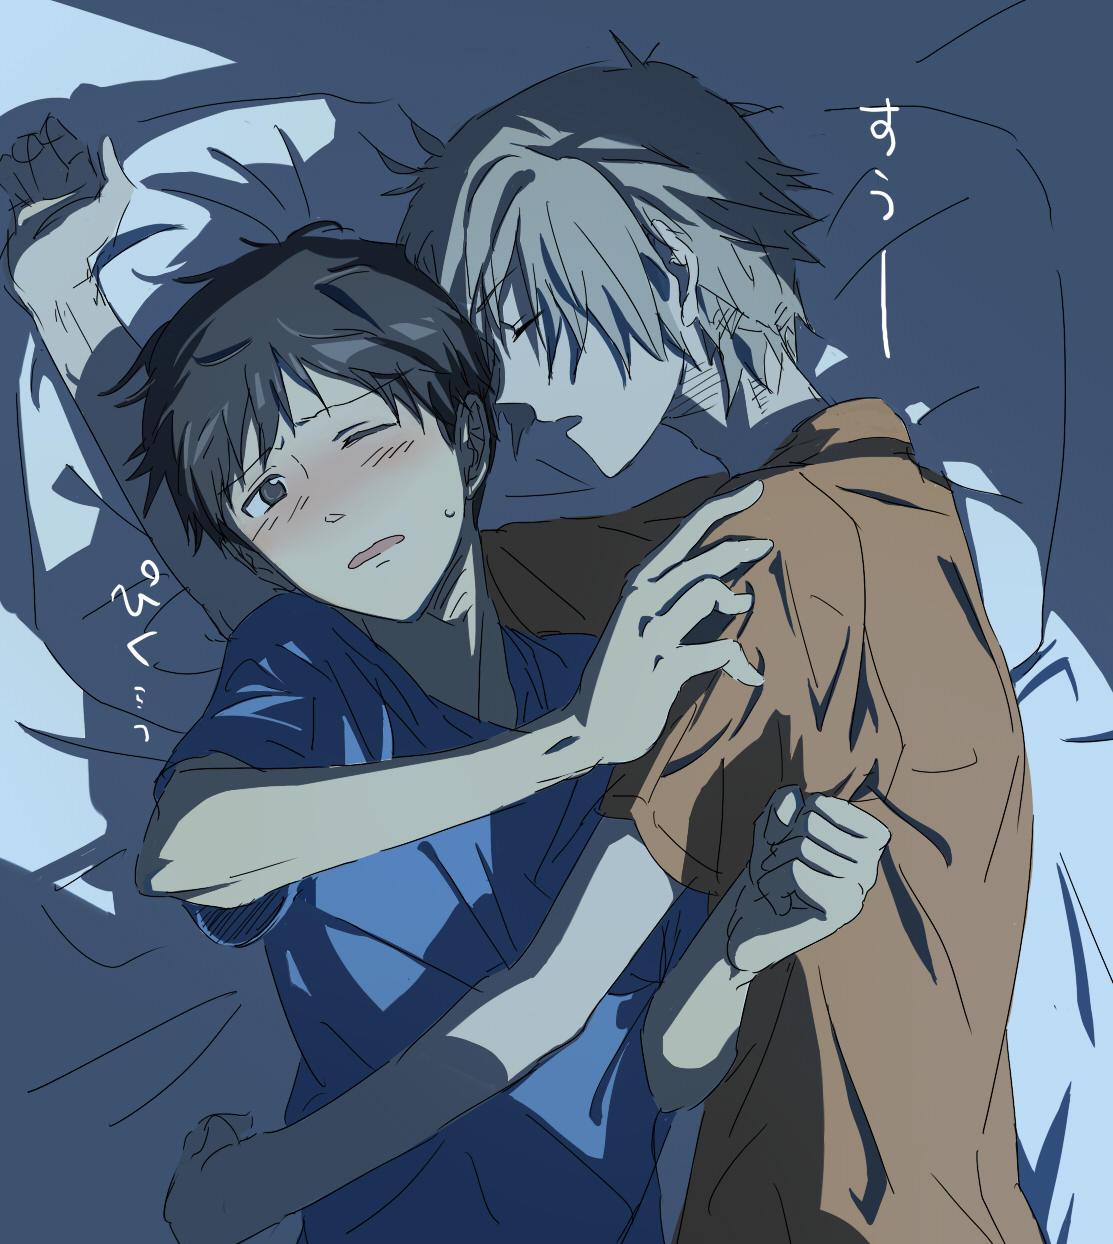 Nagisa Kaworu and Ikari Shinji sleeping together NGE yaoi fanart - But you are so warm! neon-genesis-evangelion-yaoi Sleeping Nagisa Kaworu KawoShin Ikari Shinji - fanarts on yaoi-online.com